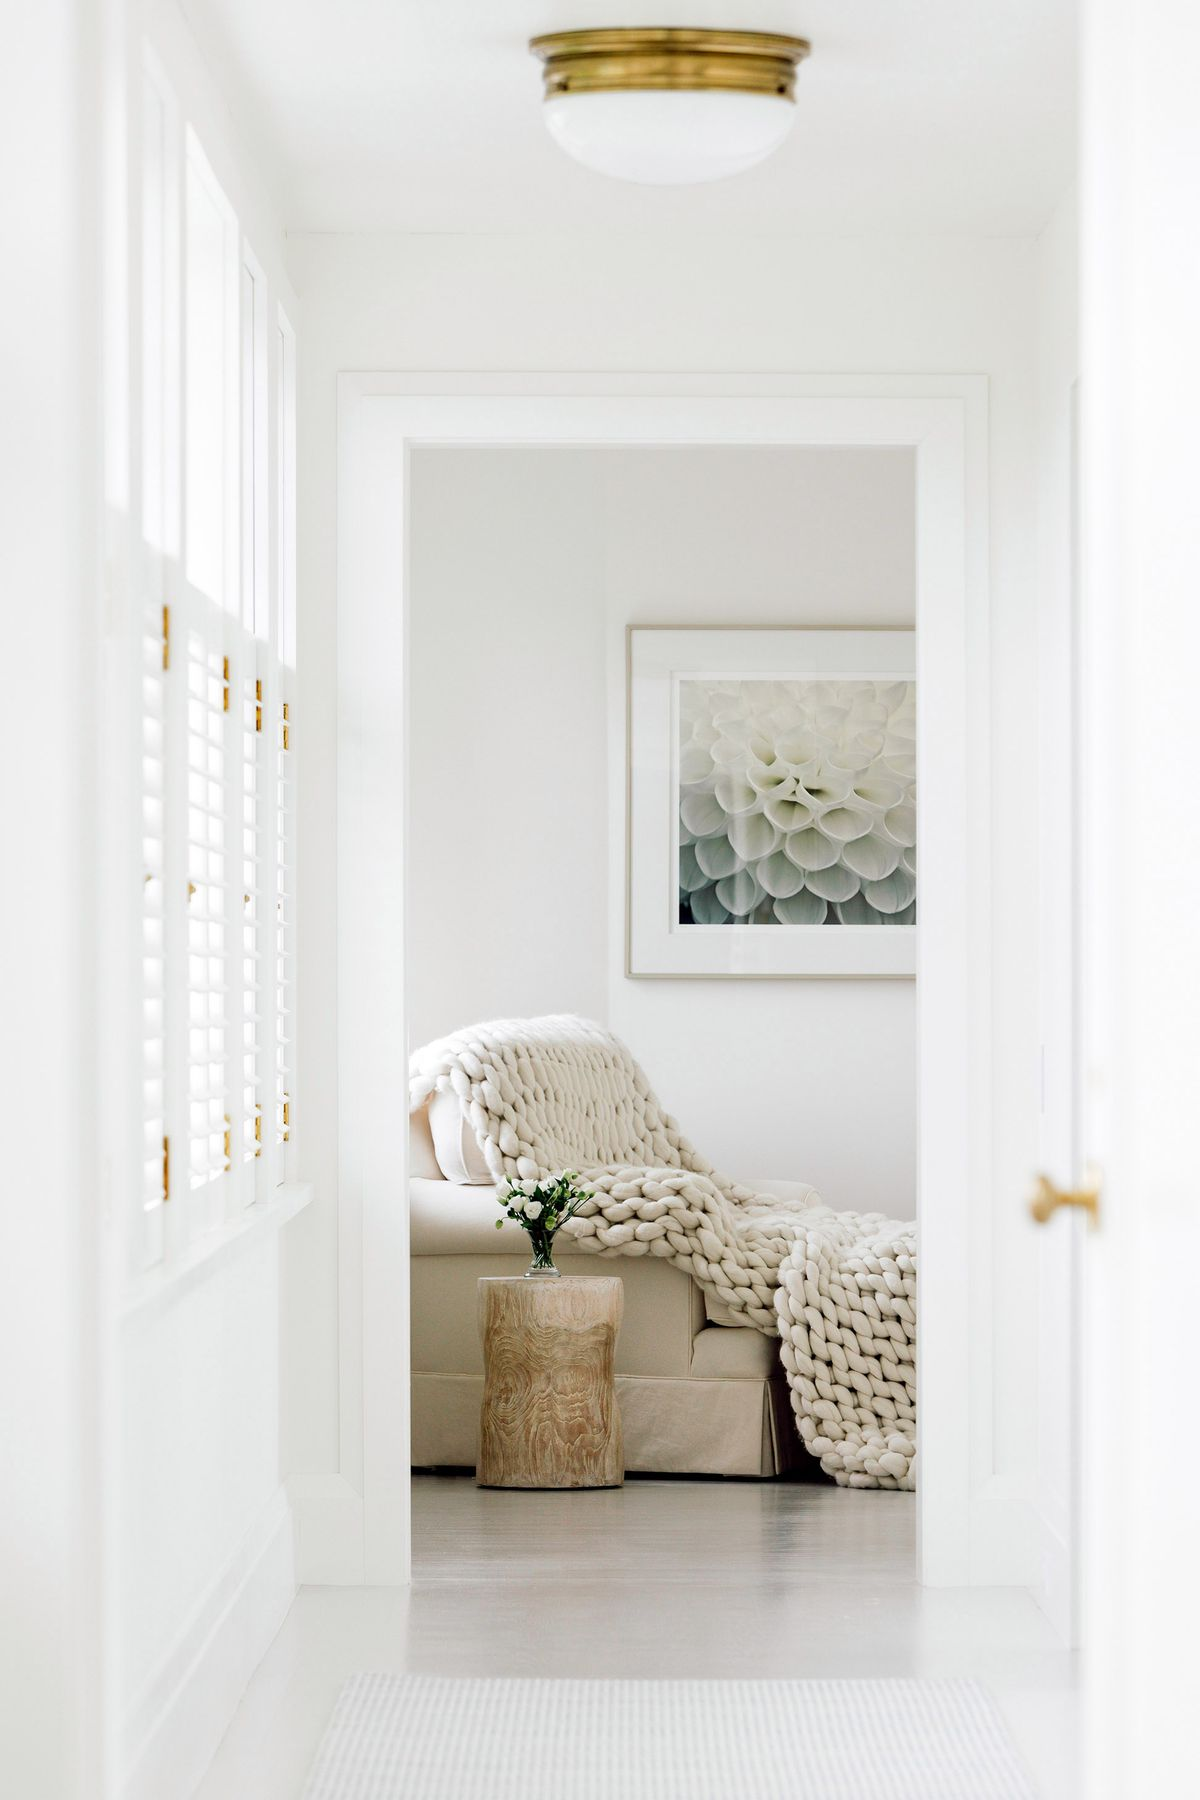 A view from the hallway shows a comfortable white armchair and a knit throw in the master bedroom.